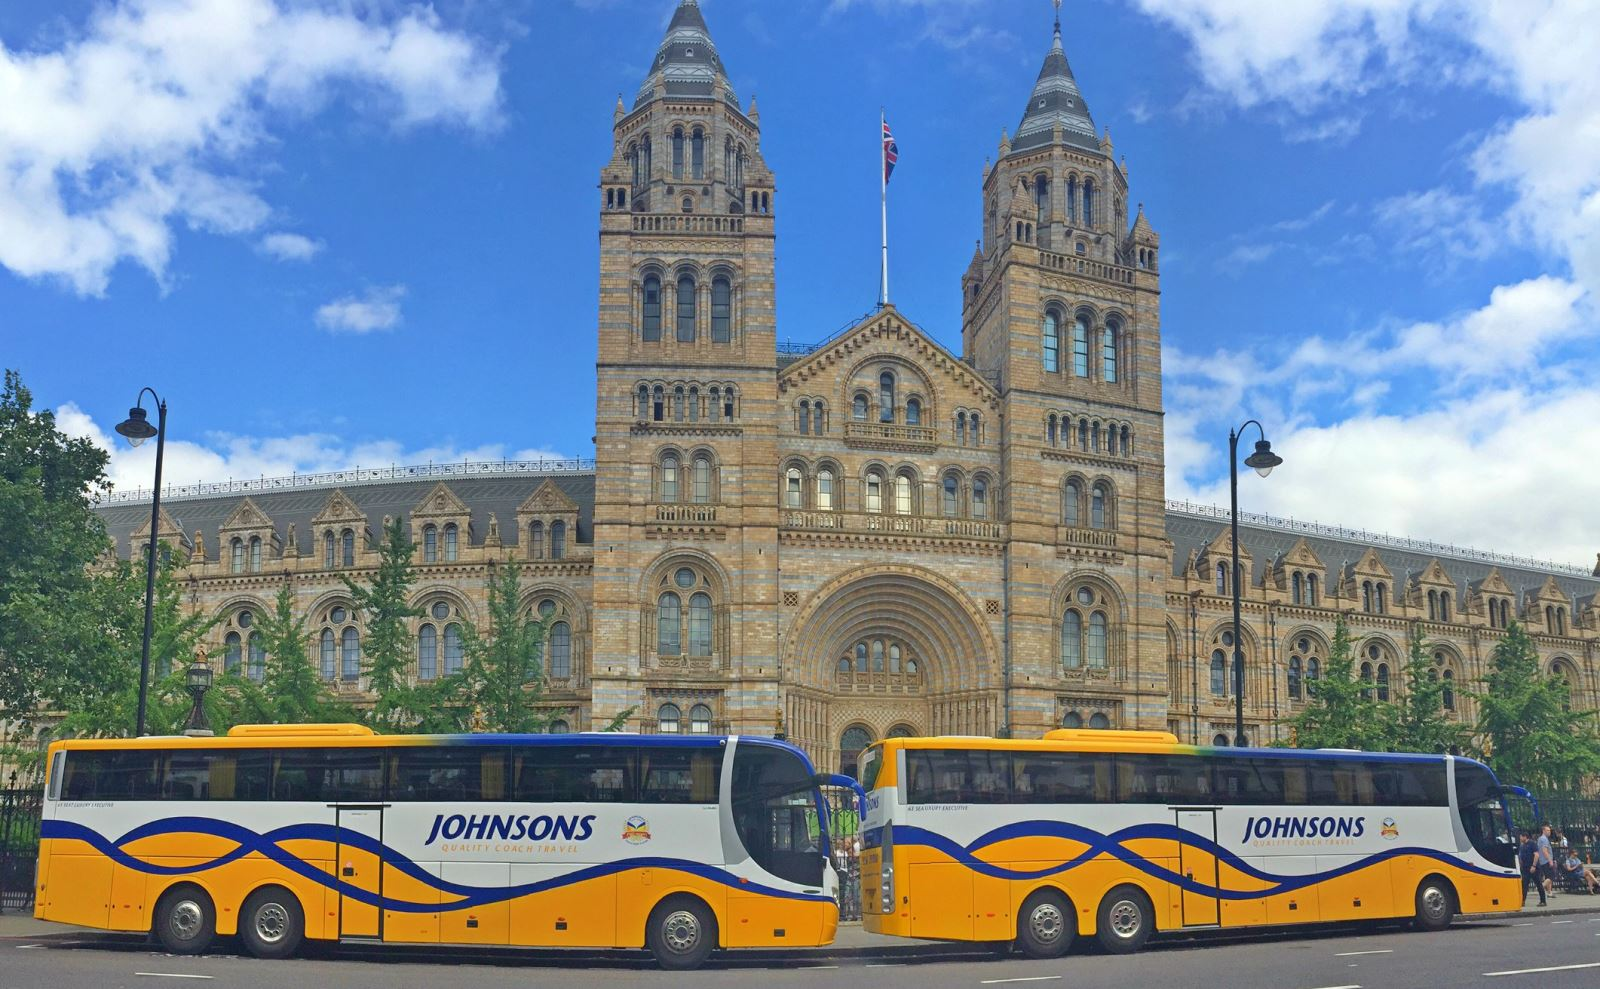 Johnsons Coaches outside National History Museum London